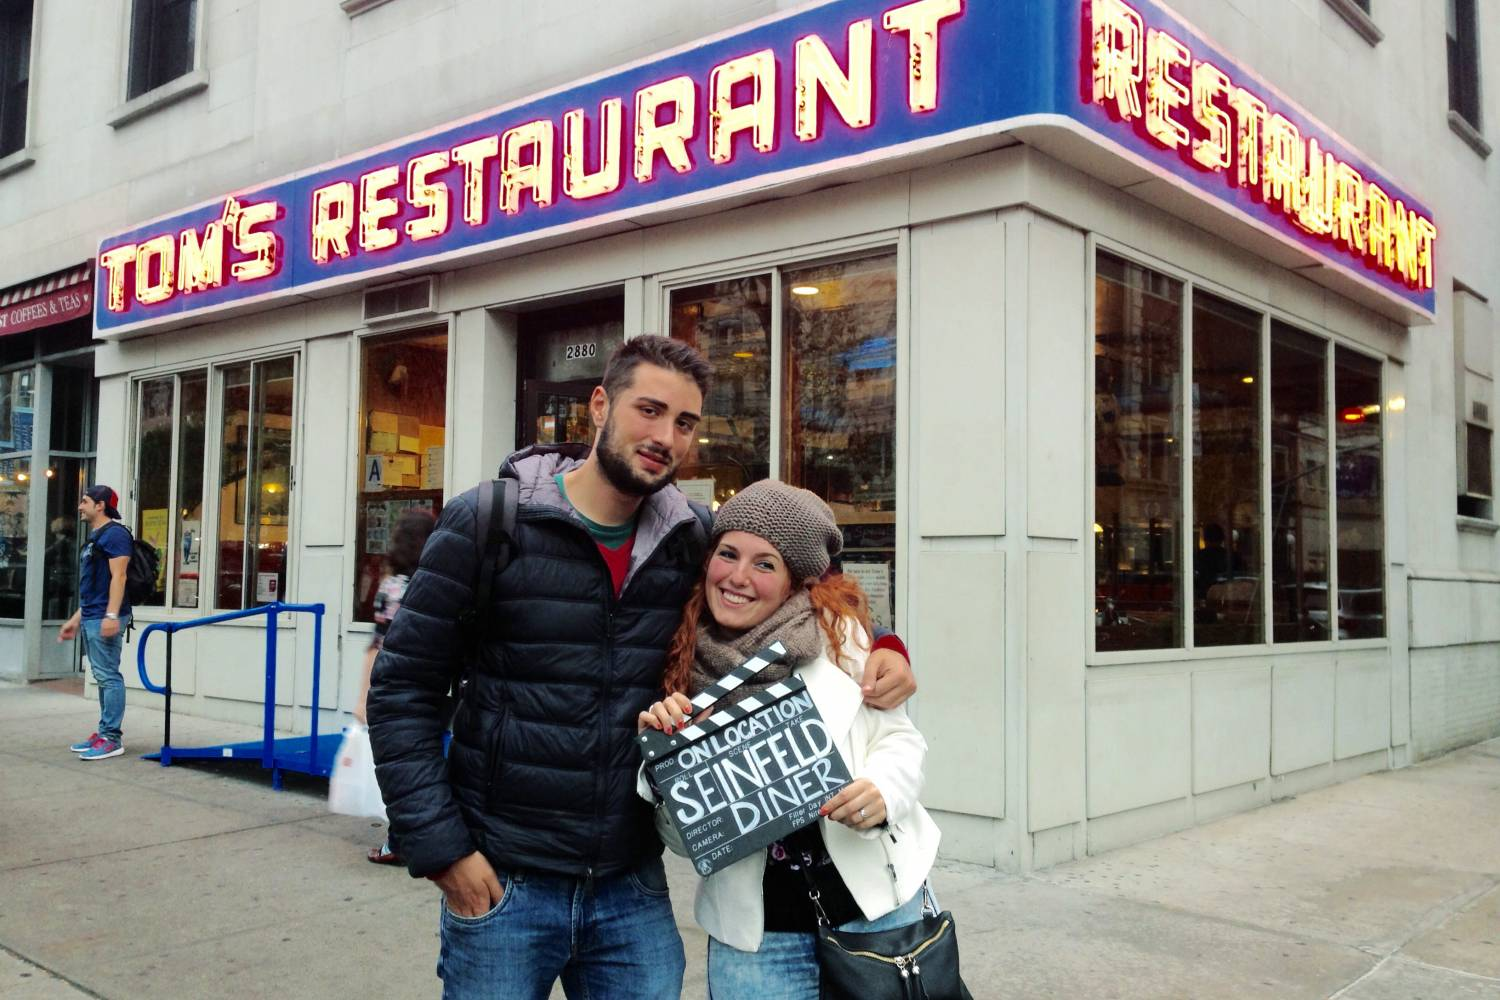 On Location Tours, when harry met sally